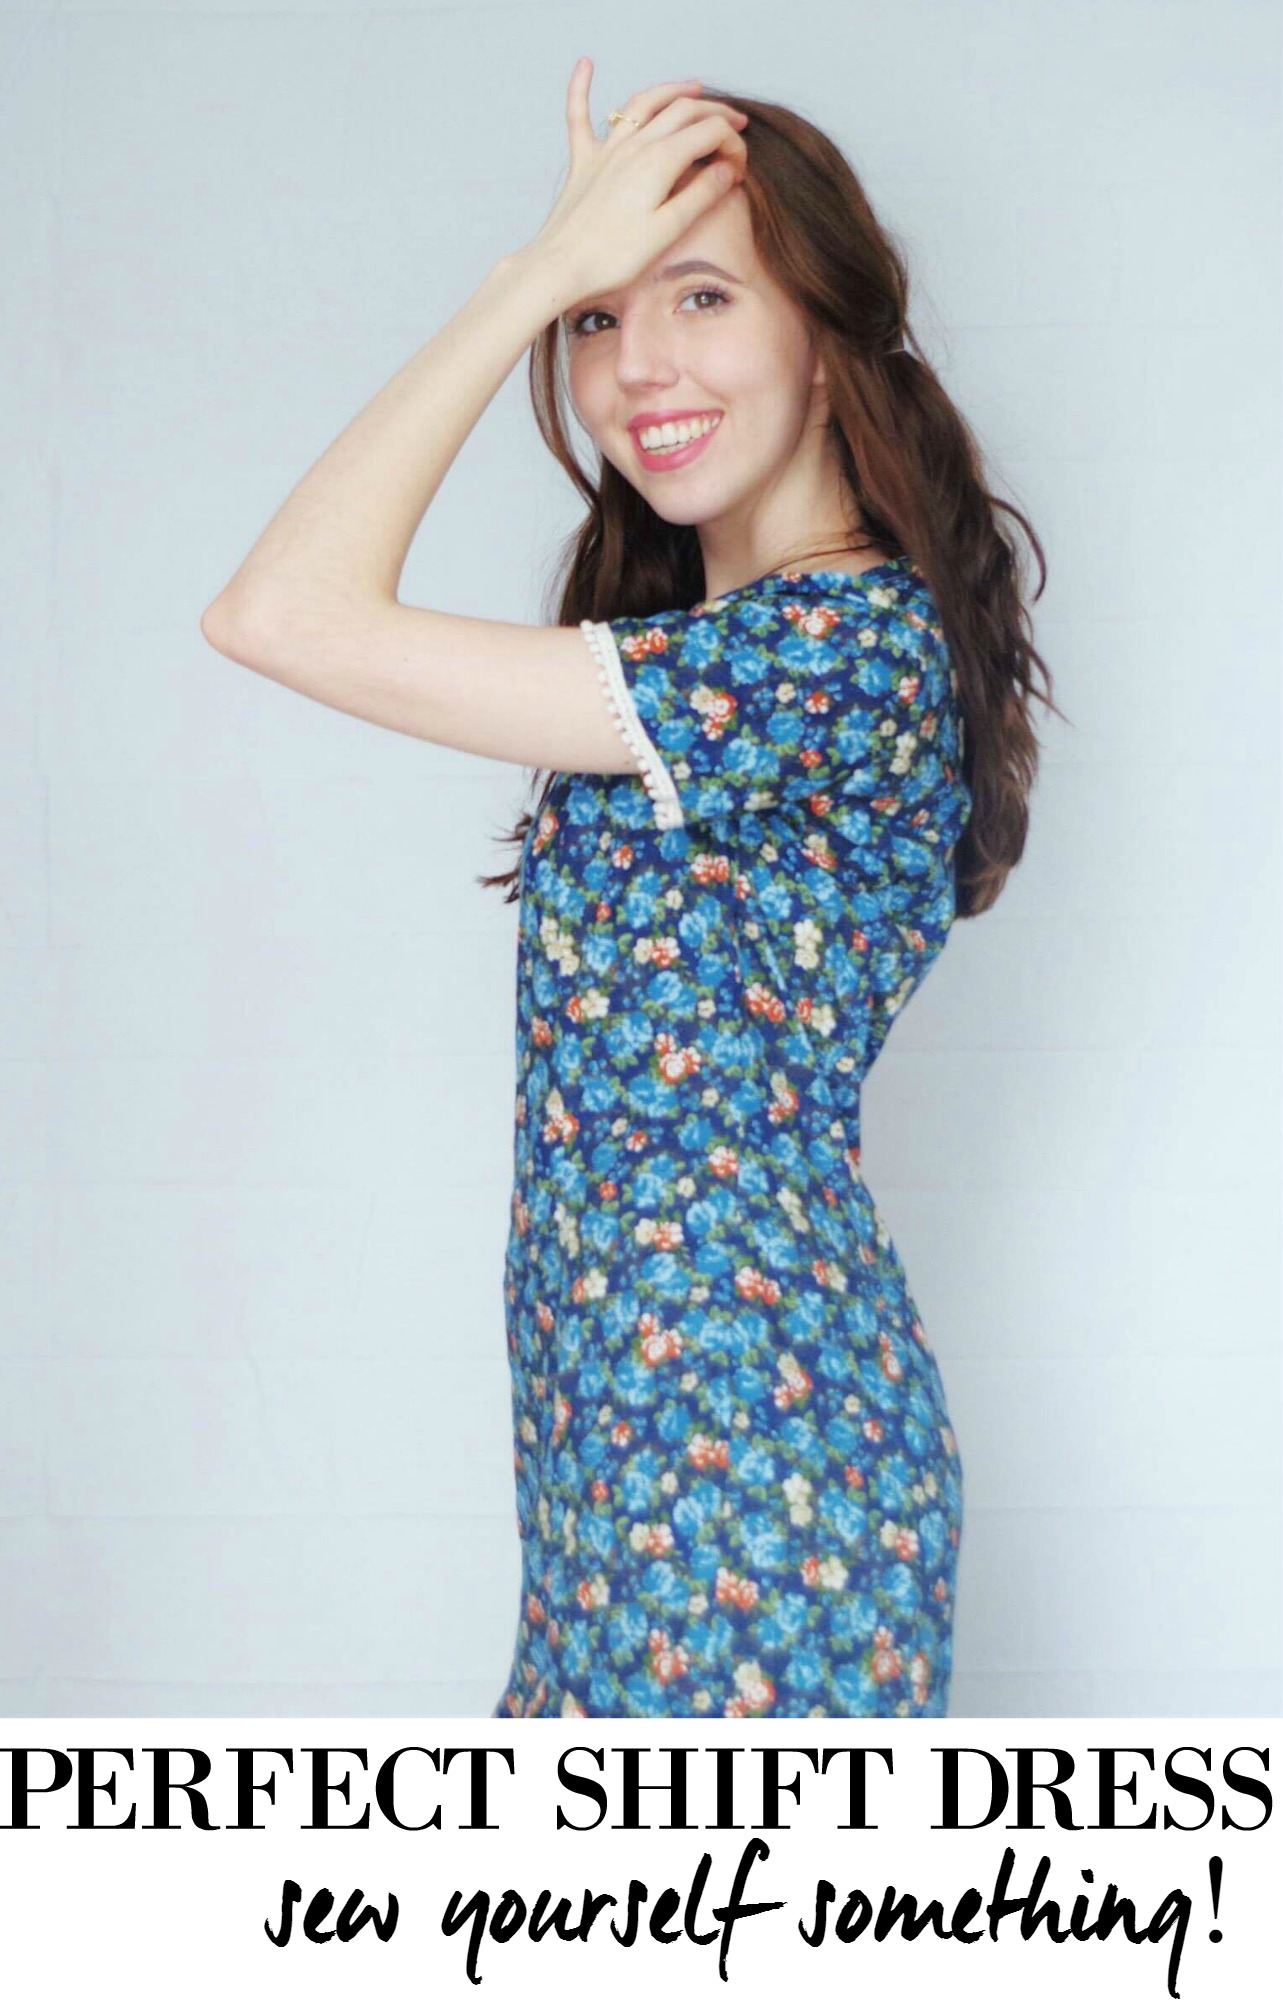 The perfect little shift dress pattern to complete your wardrobe! It's a steal, costing less than $5!